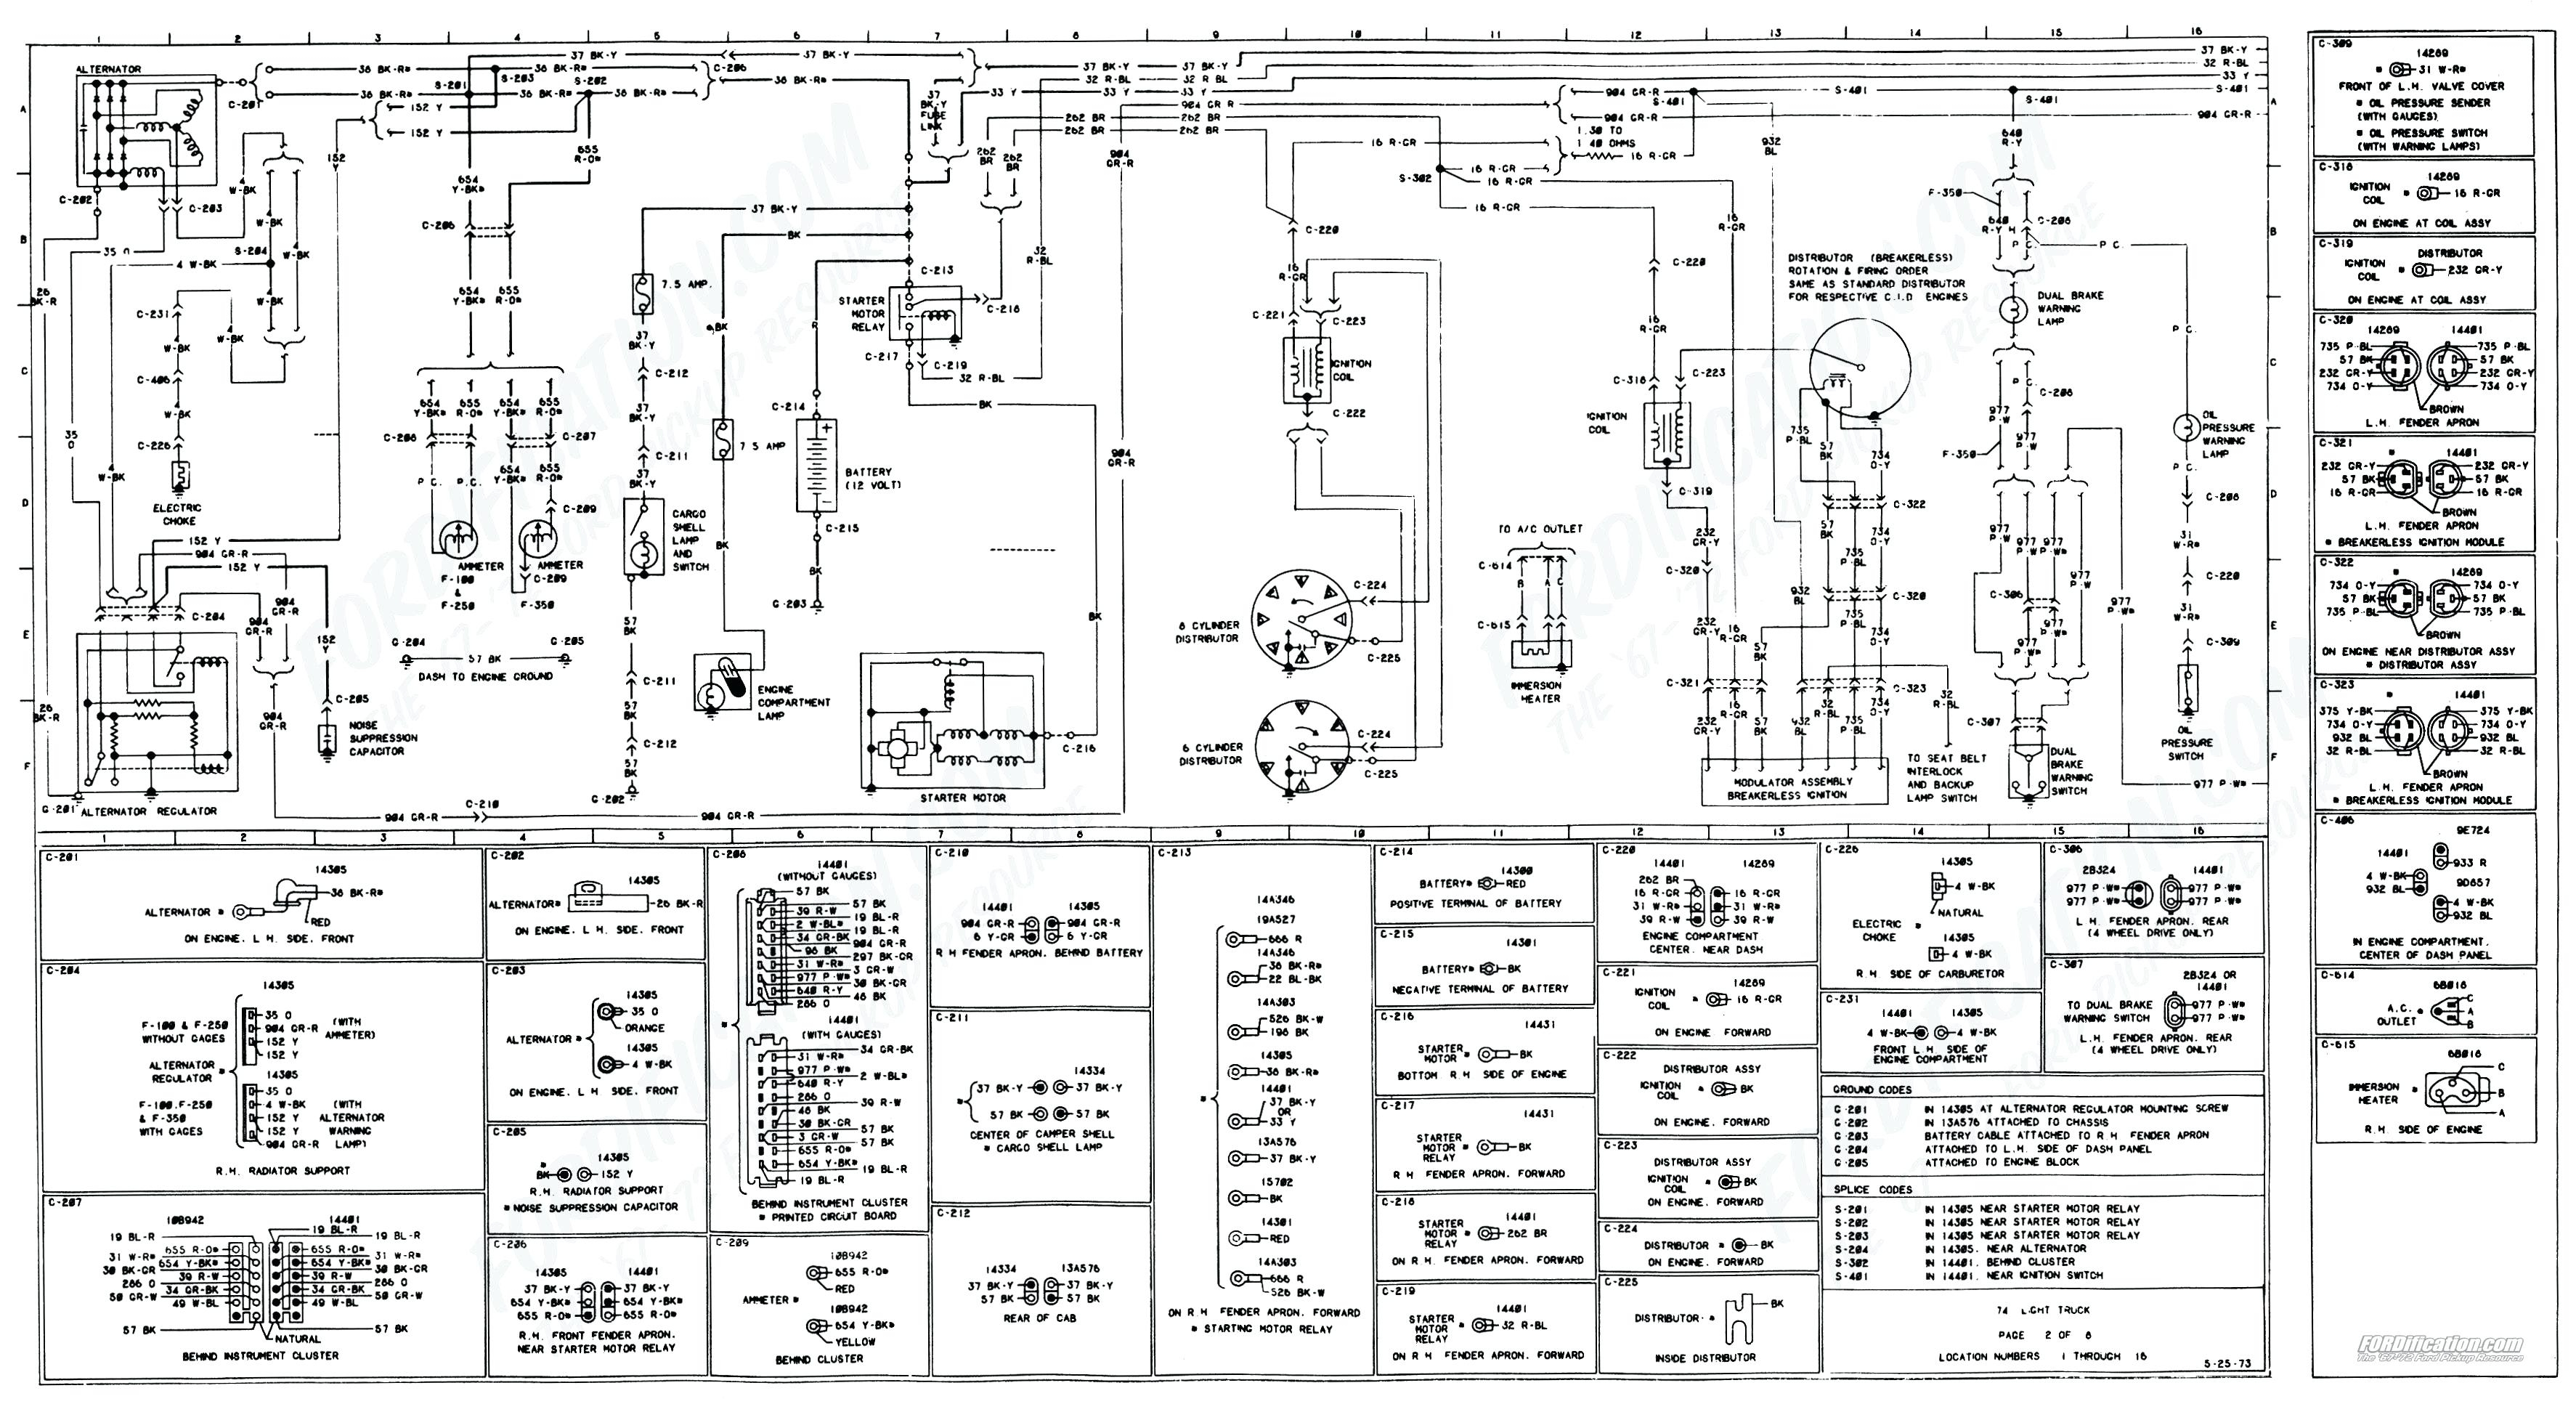 [DIAGRAM] 2012 Ford F 650 Fuse Box Diagram FULL Version HD